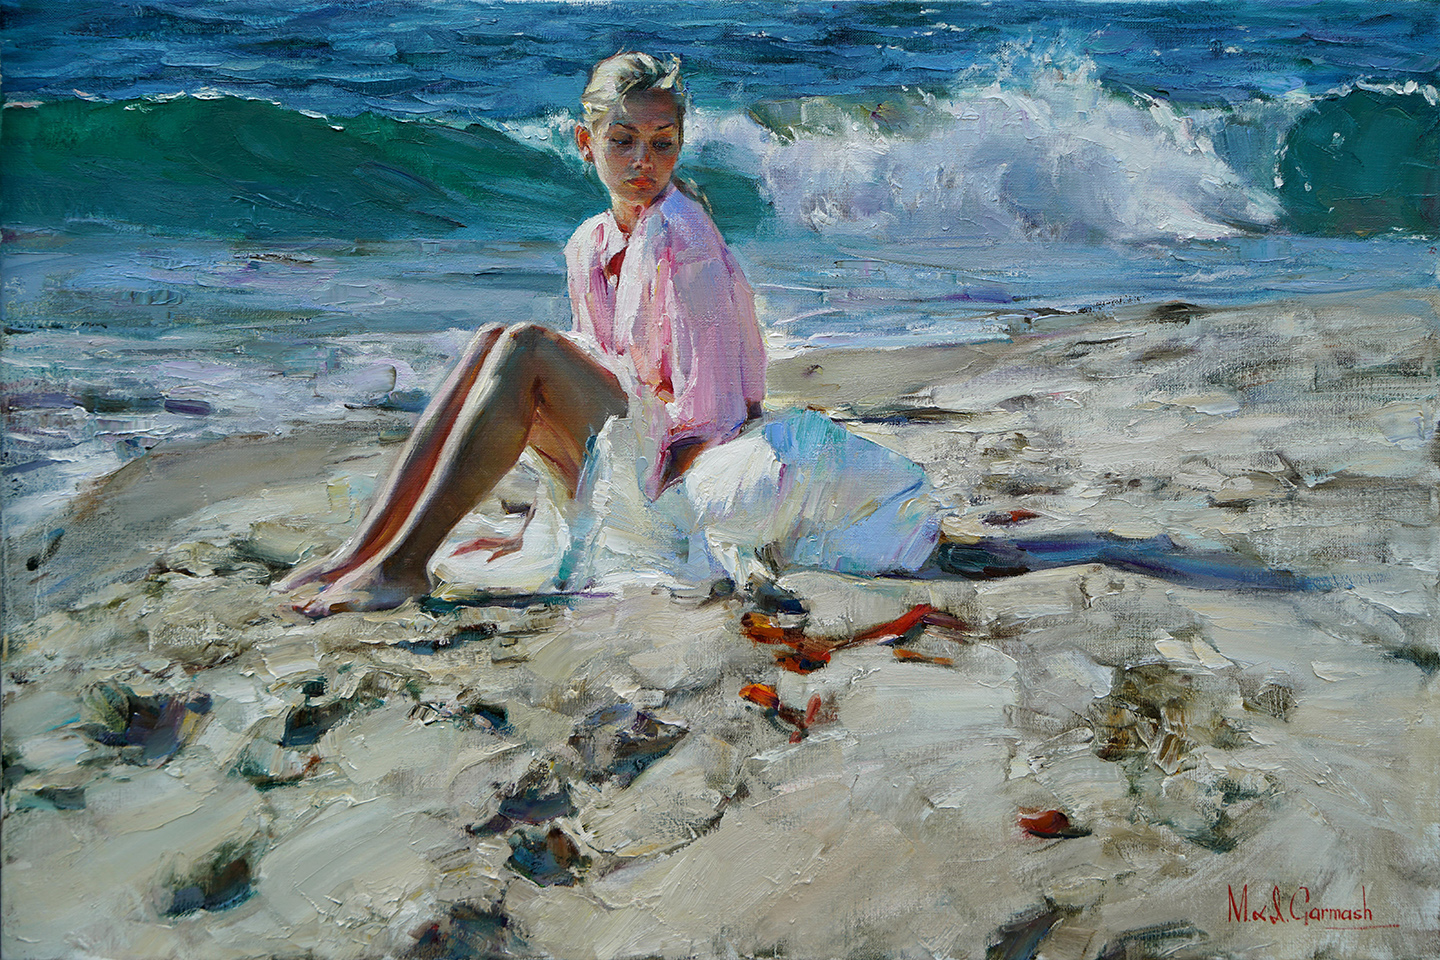 M and I Garmash